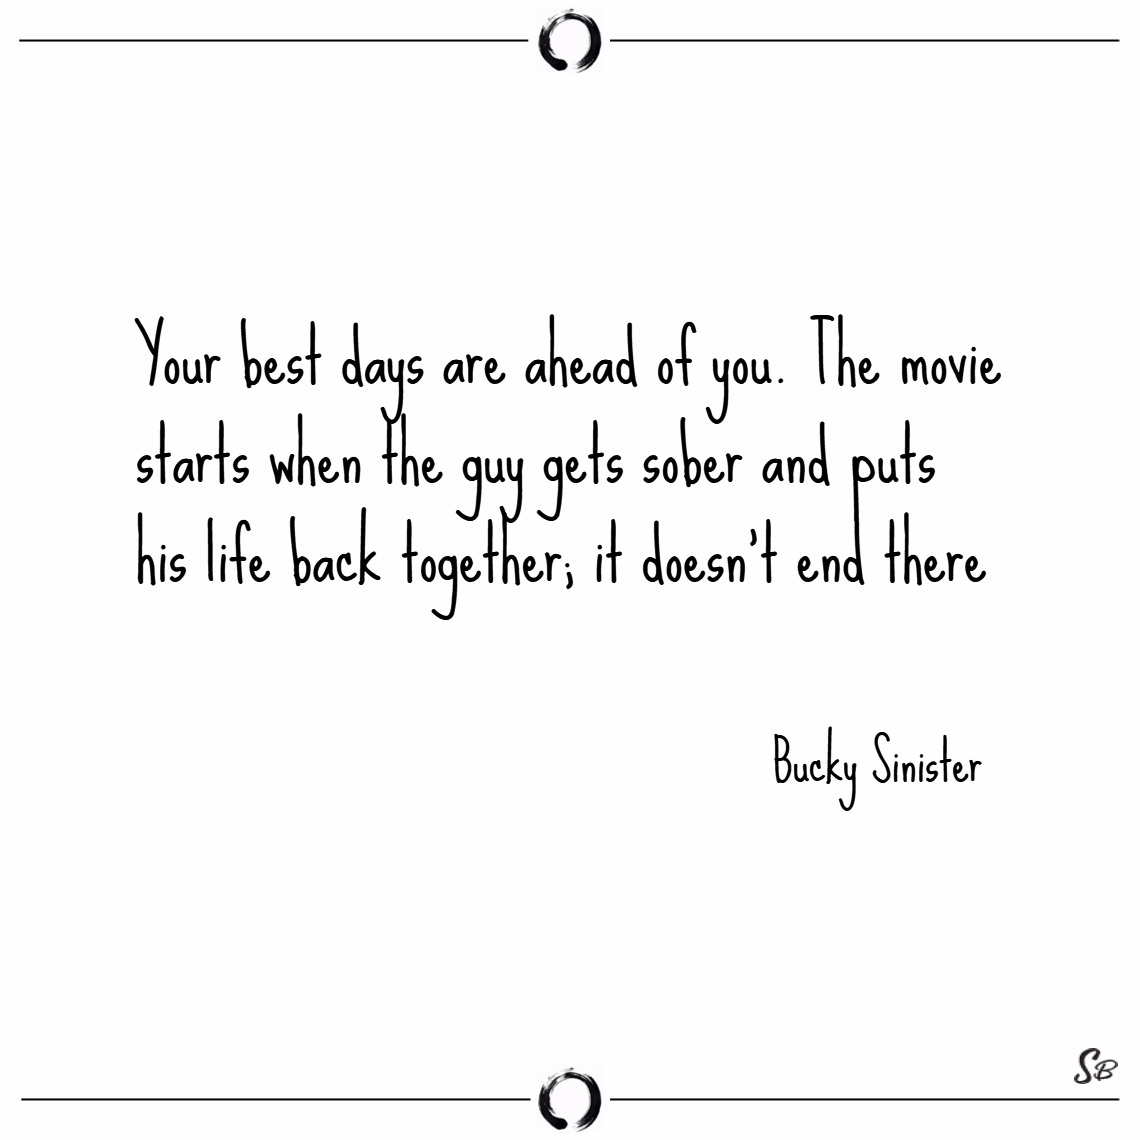 Your best days are ahead of you. the movie starts when the guy gets sober and puts his life back together; it doesn't end there. – bucky sinister